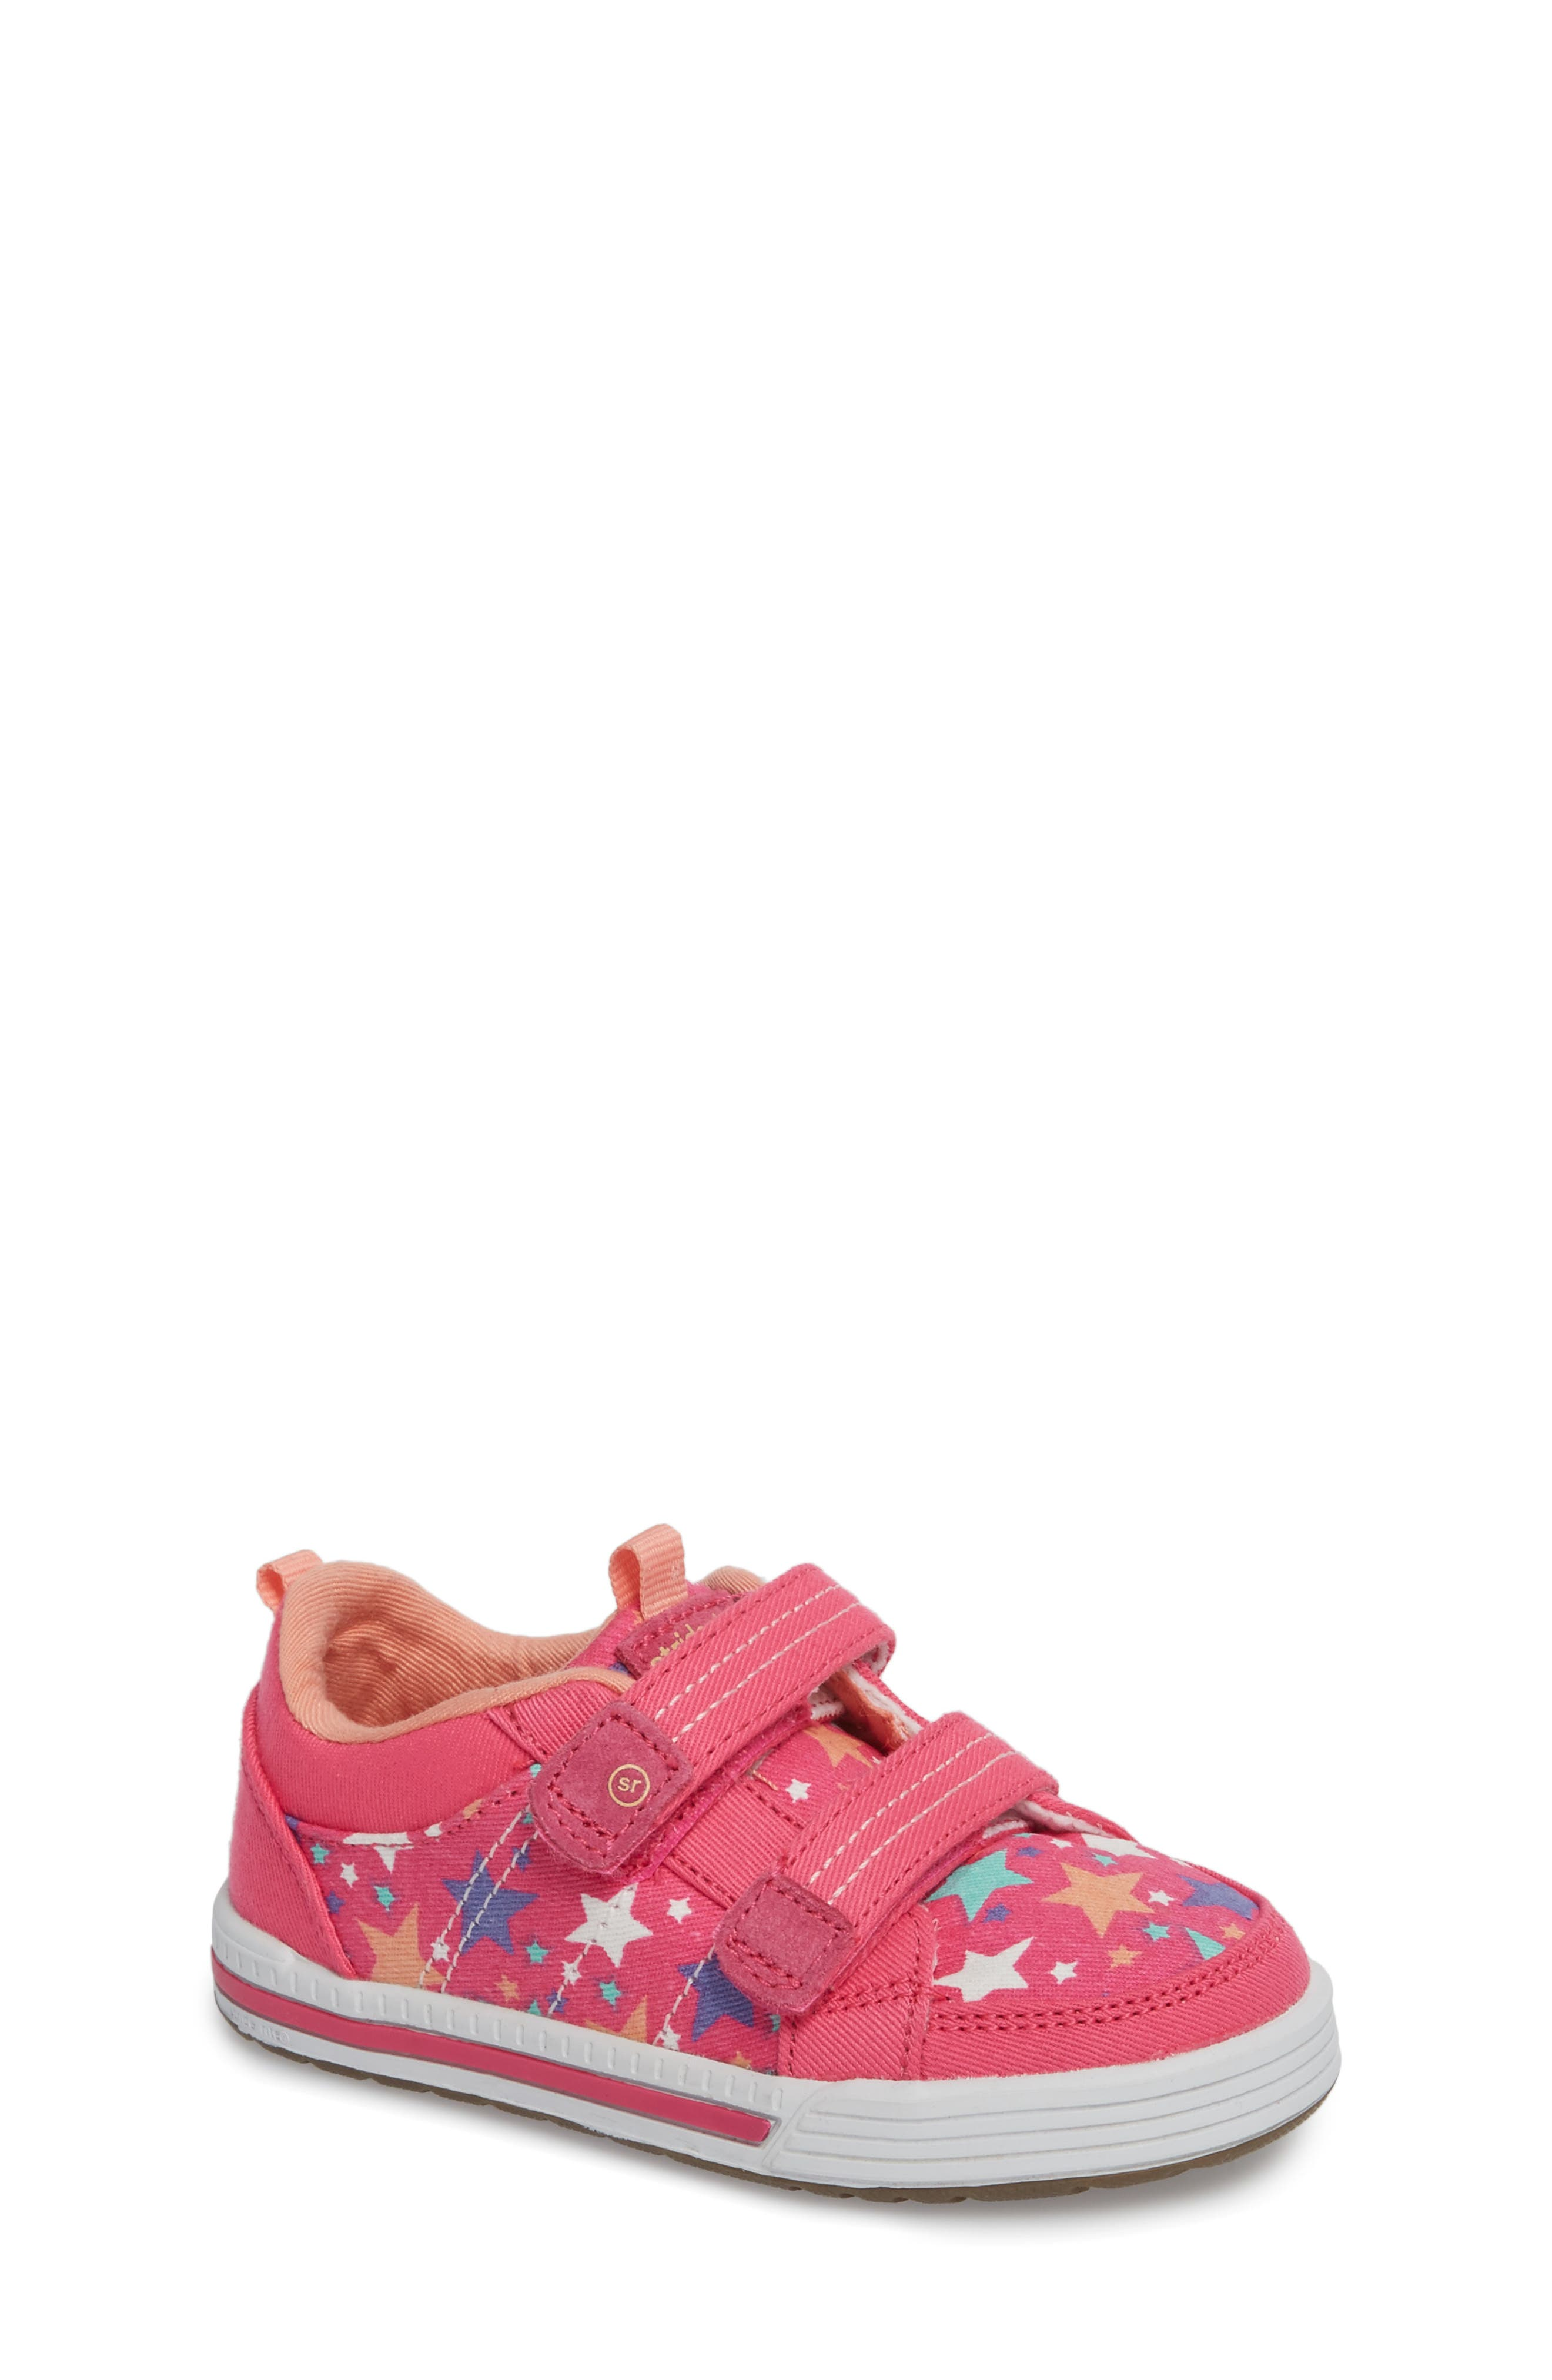 Stride Rite Logan Patterned Sneaker (Baby, Walker & Toddler)